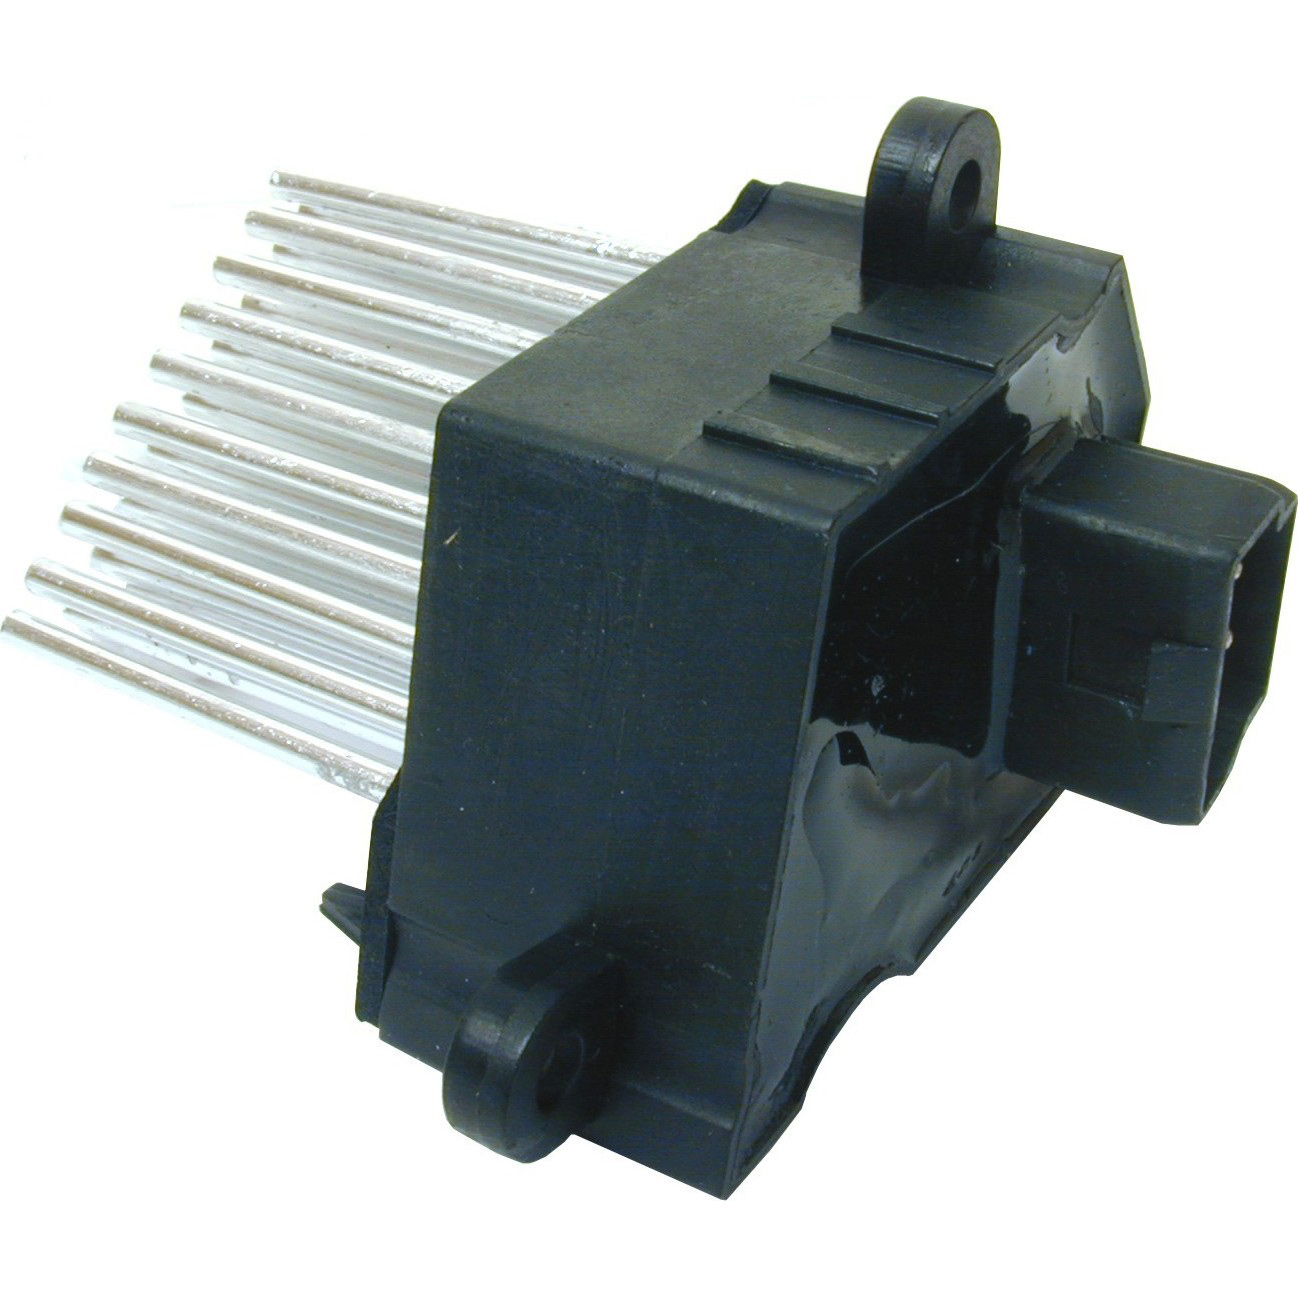 E46 e39 x3 x5 uro final stage unit blower resistor for What is a blower motor resistor